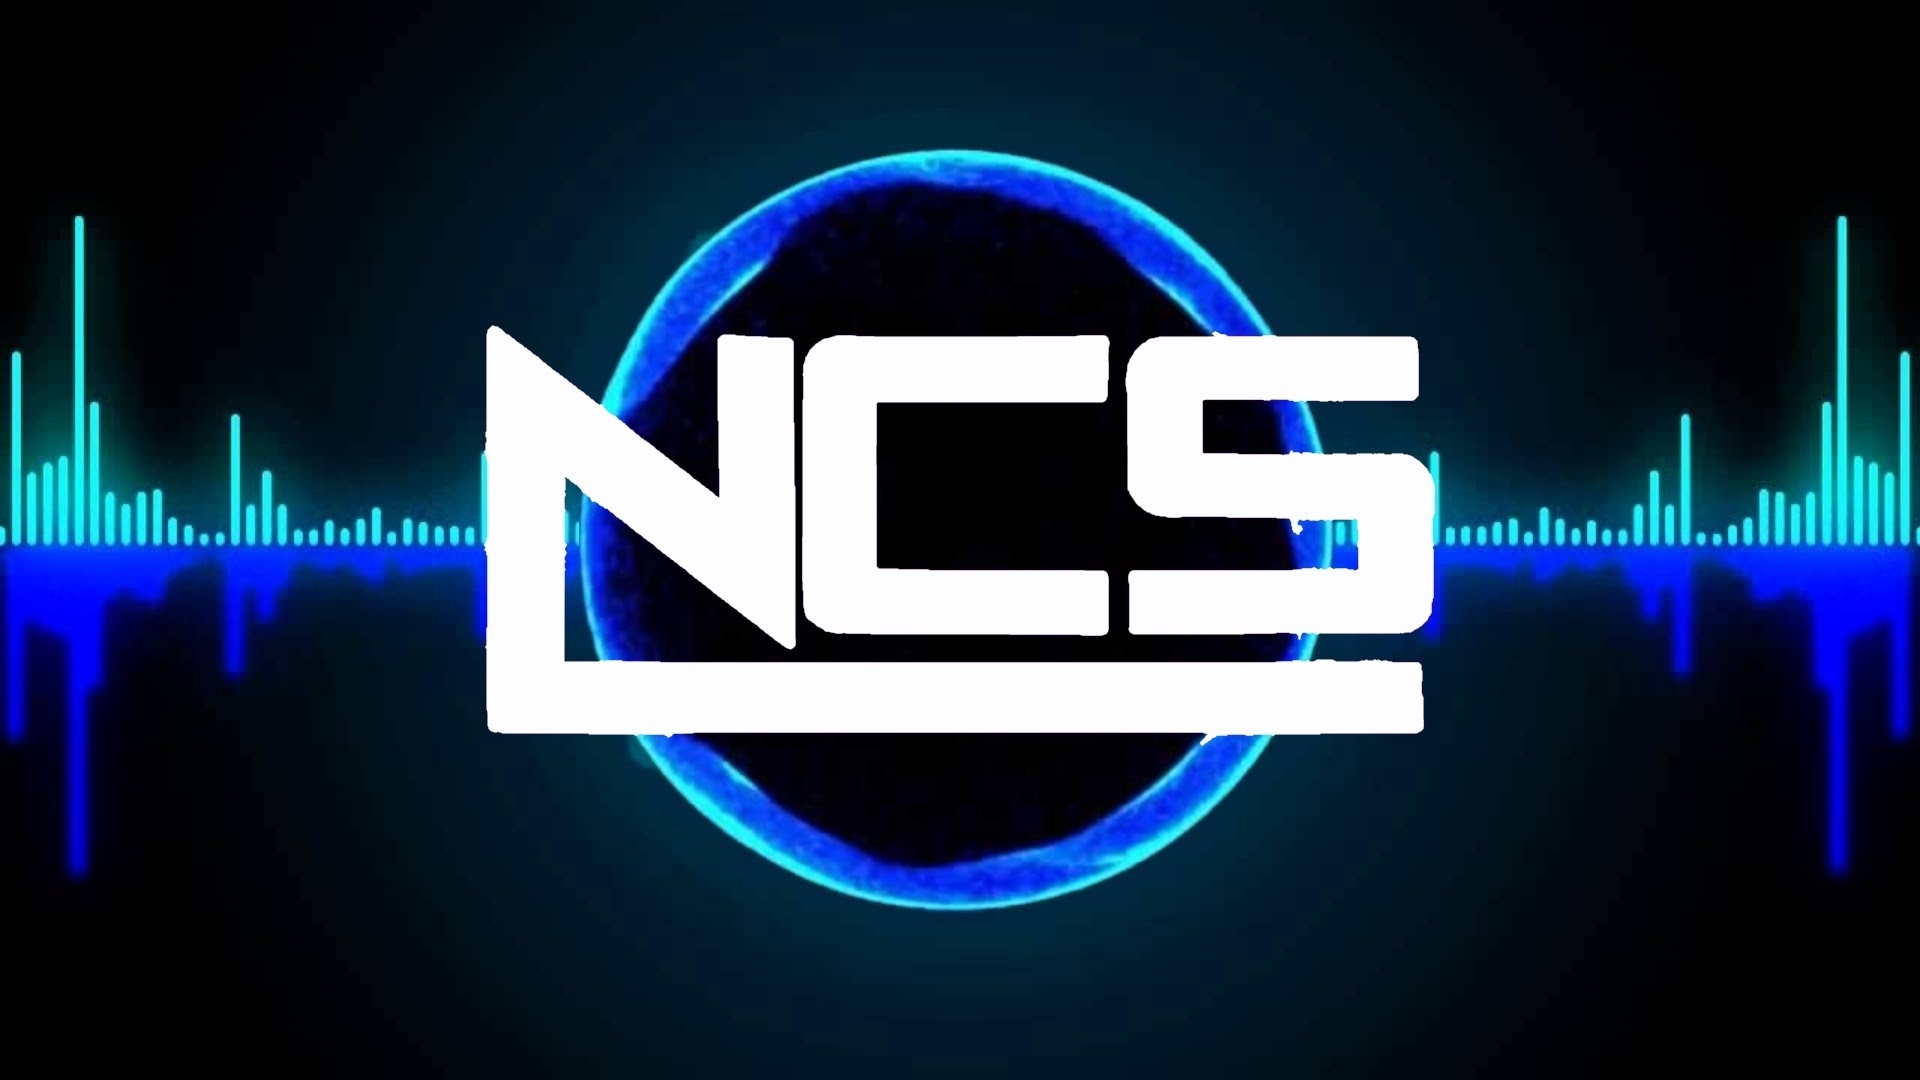 Free-cool-background-music-for-games-Download-Best-Ncs-Gaming-Video-Background-Music-No-Copyrigh-wallpaper-wpc9005150